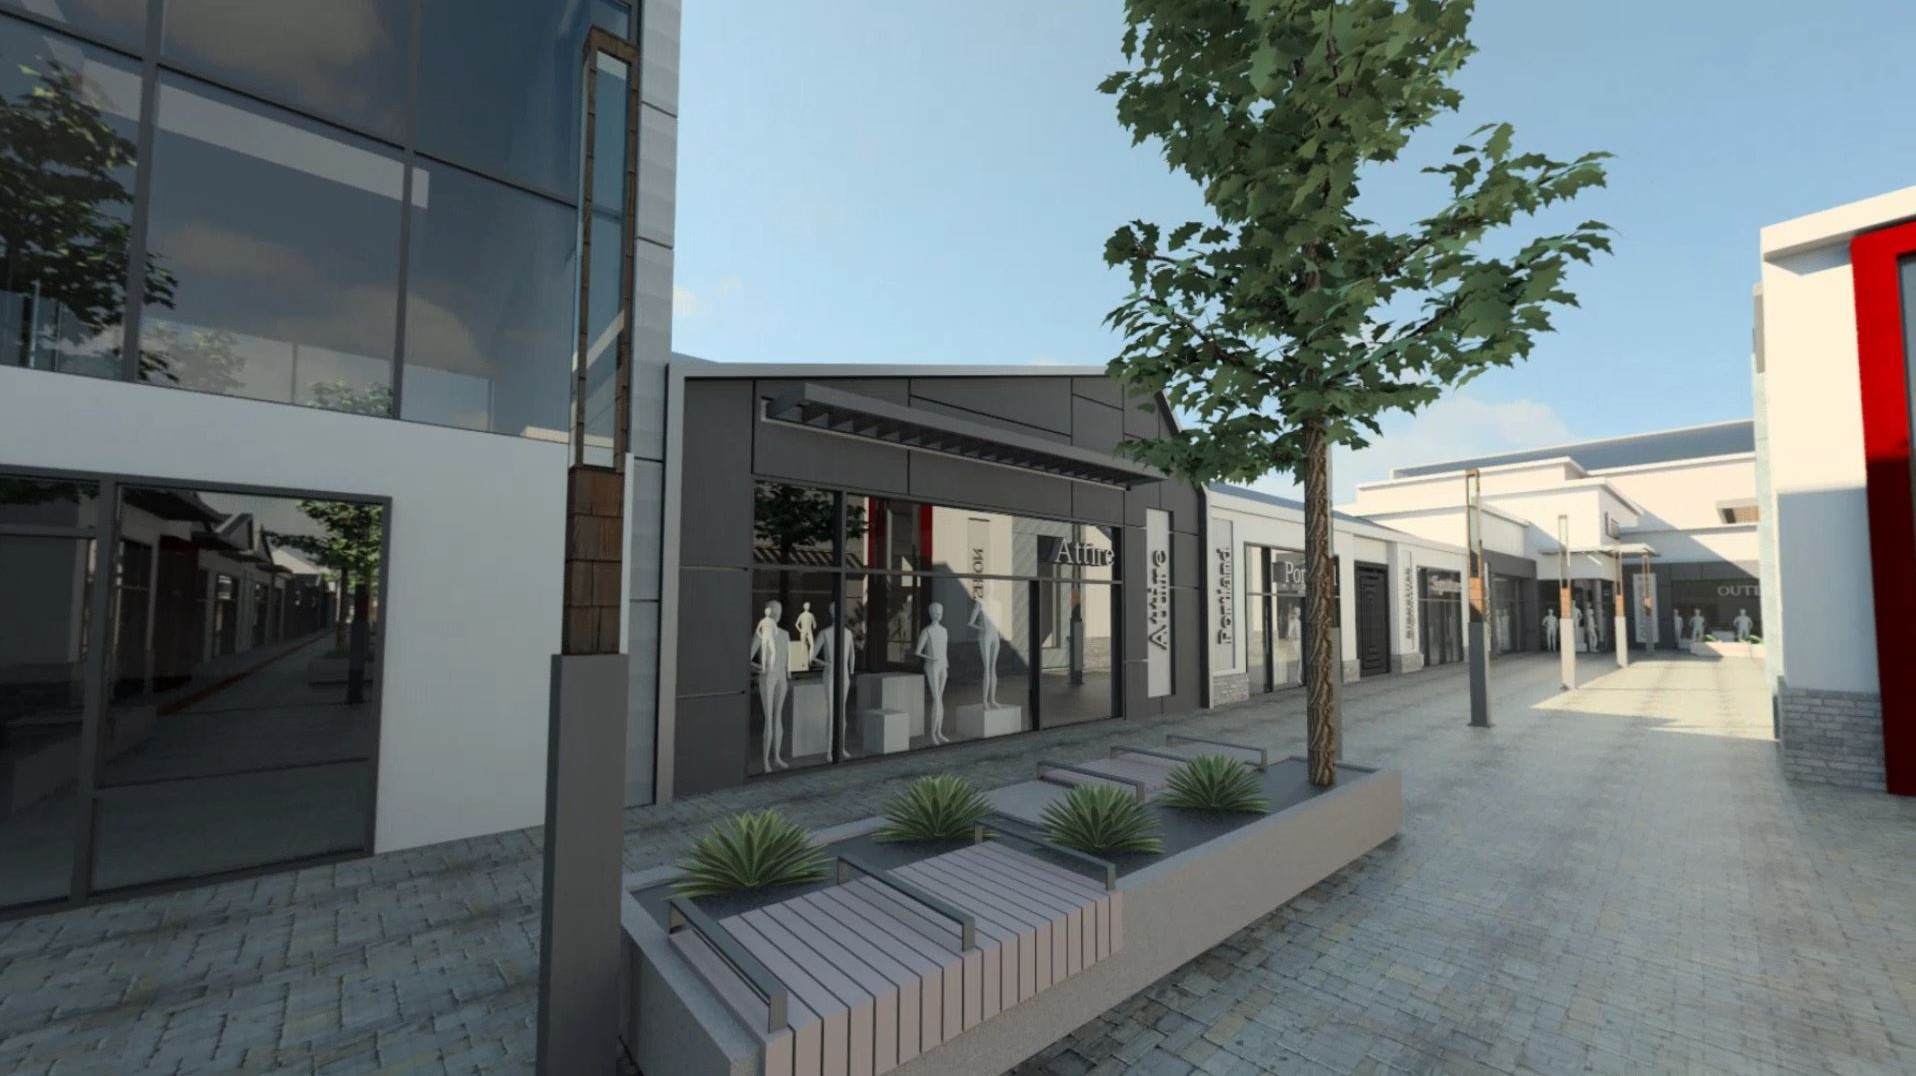 Freeport Retail PLC | One of the leading developers and operators of